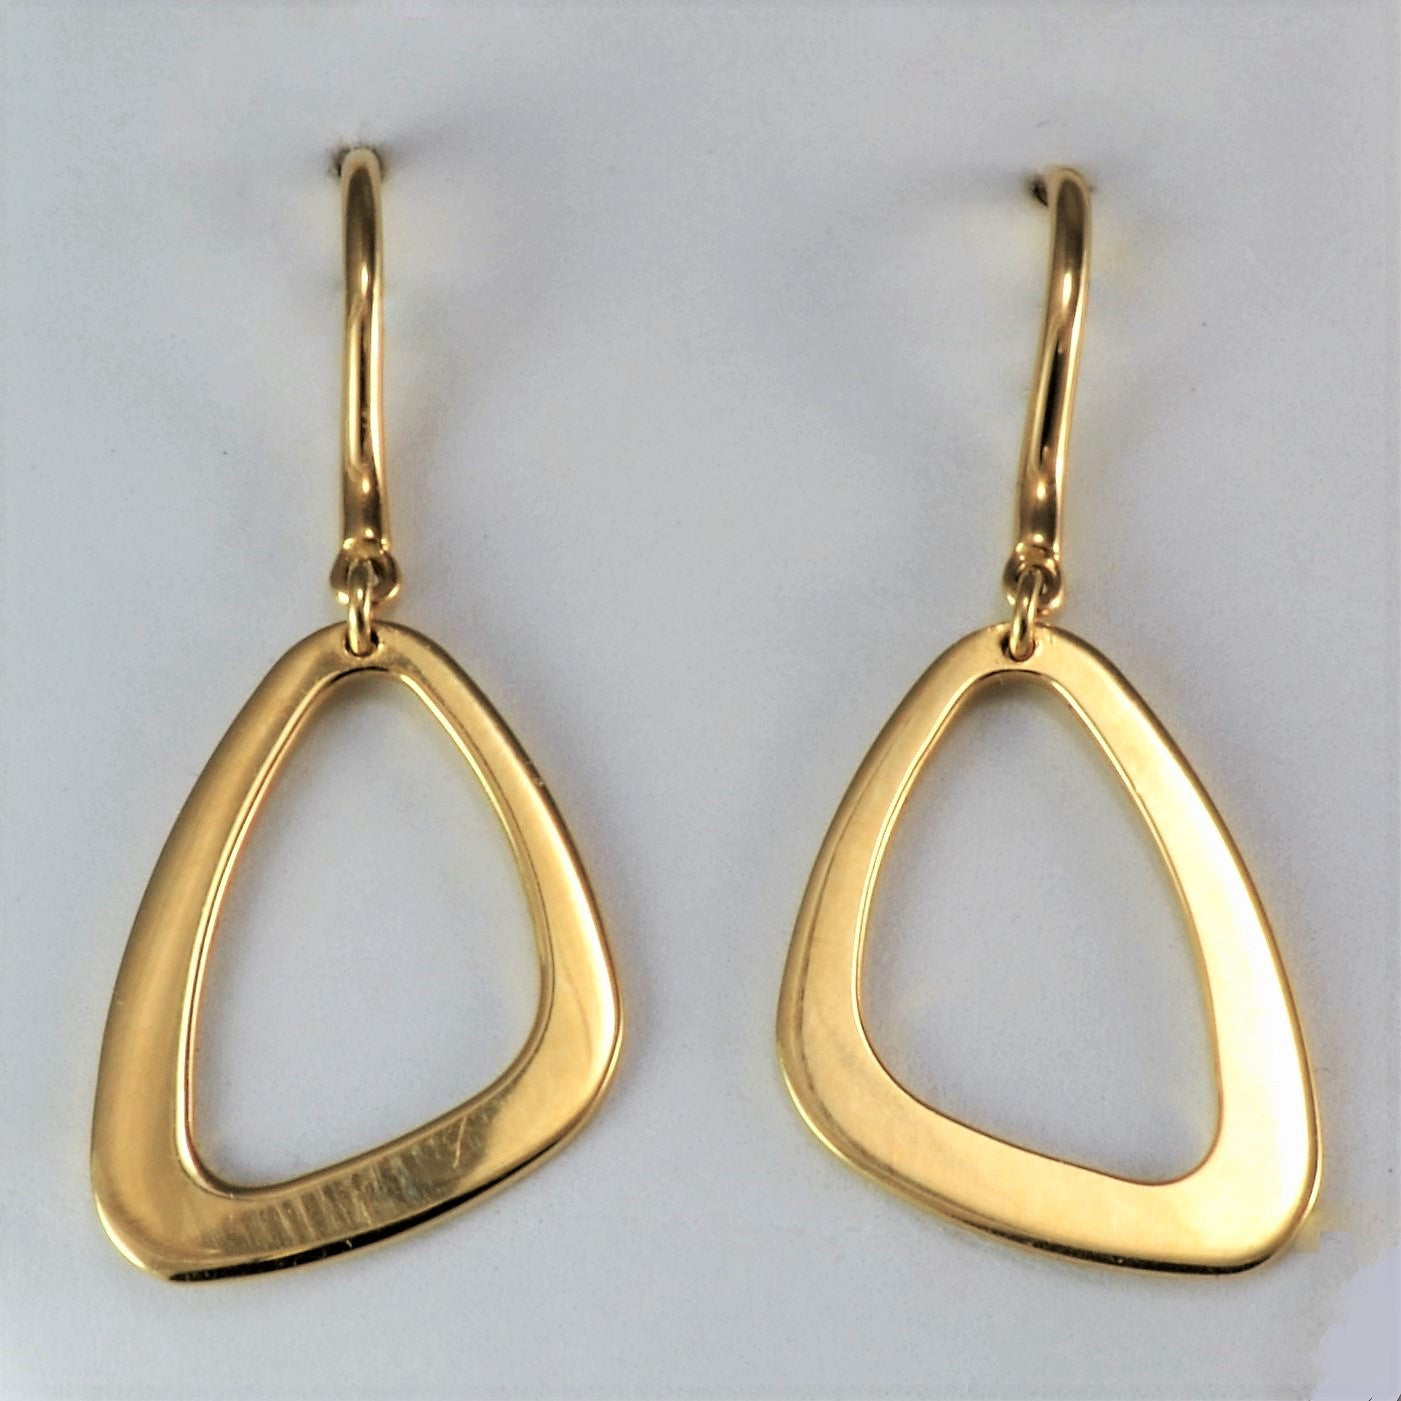 Birks Yellow Gold Drop Earrings